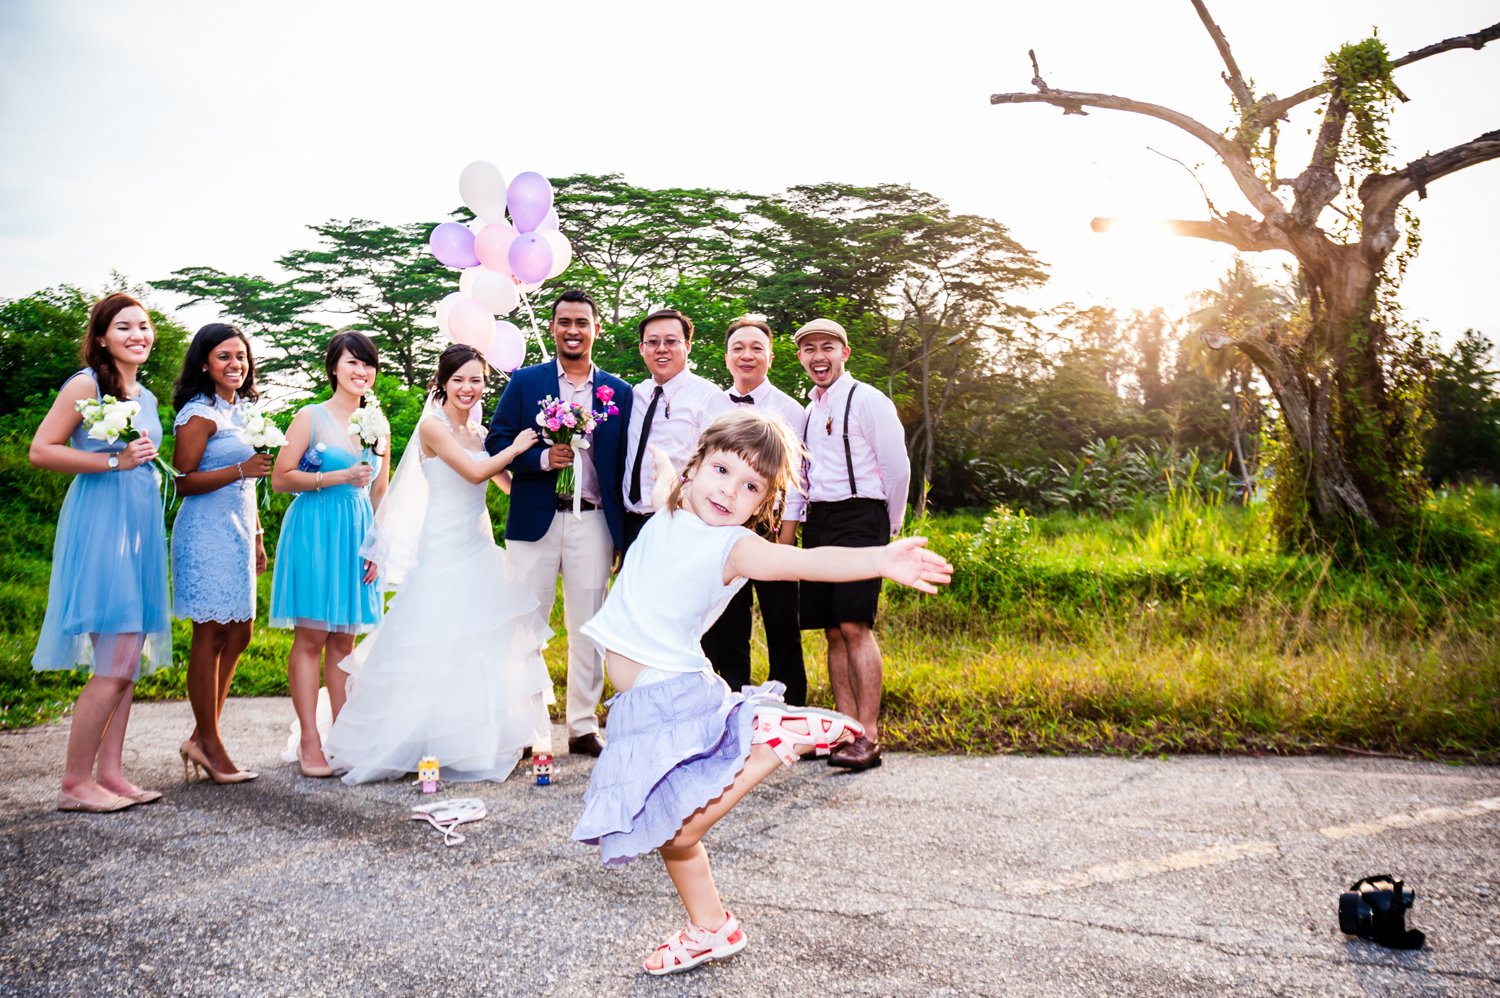 wedding-photoshoot-commonwealth-nature-singapore (7 of 7).jpg